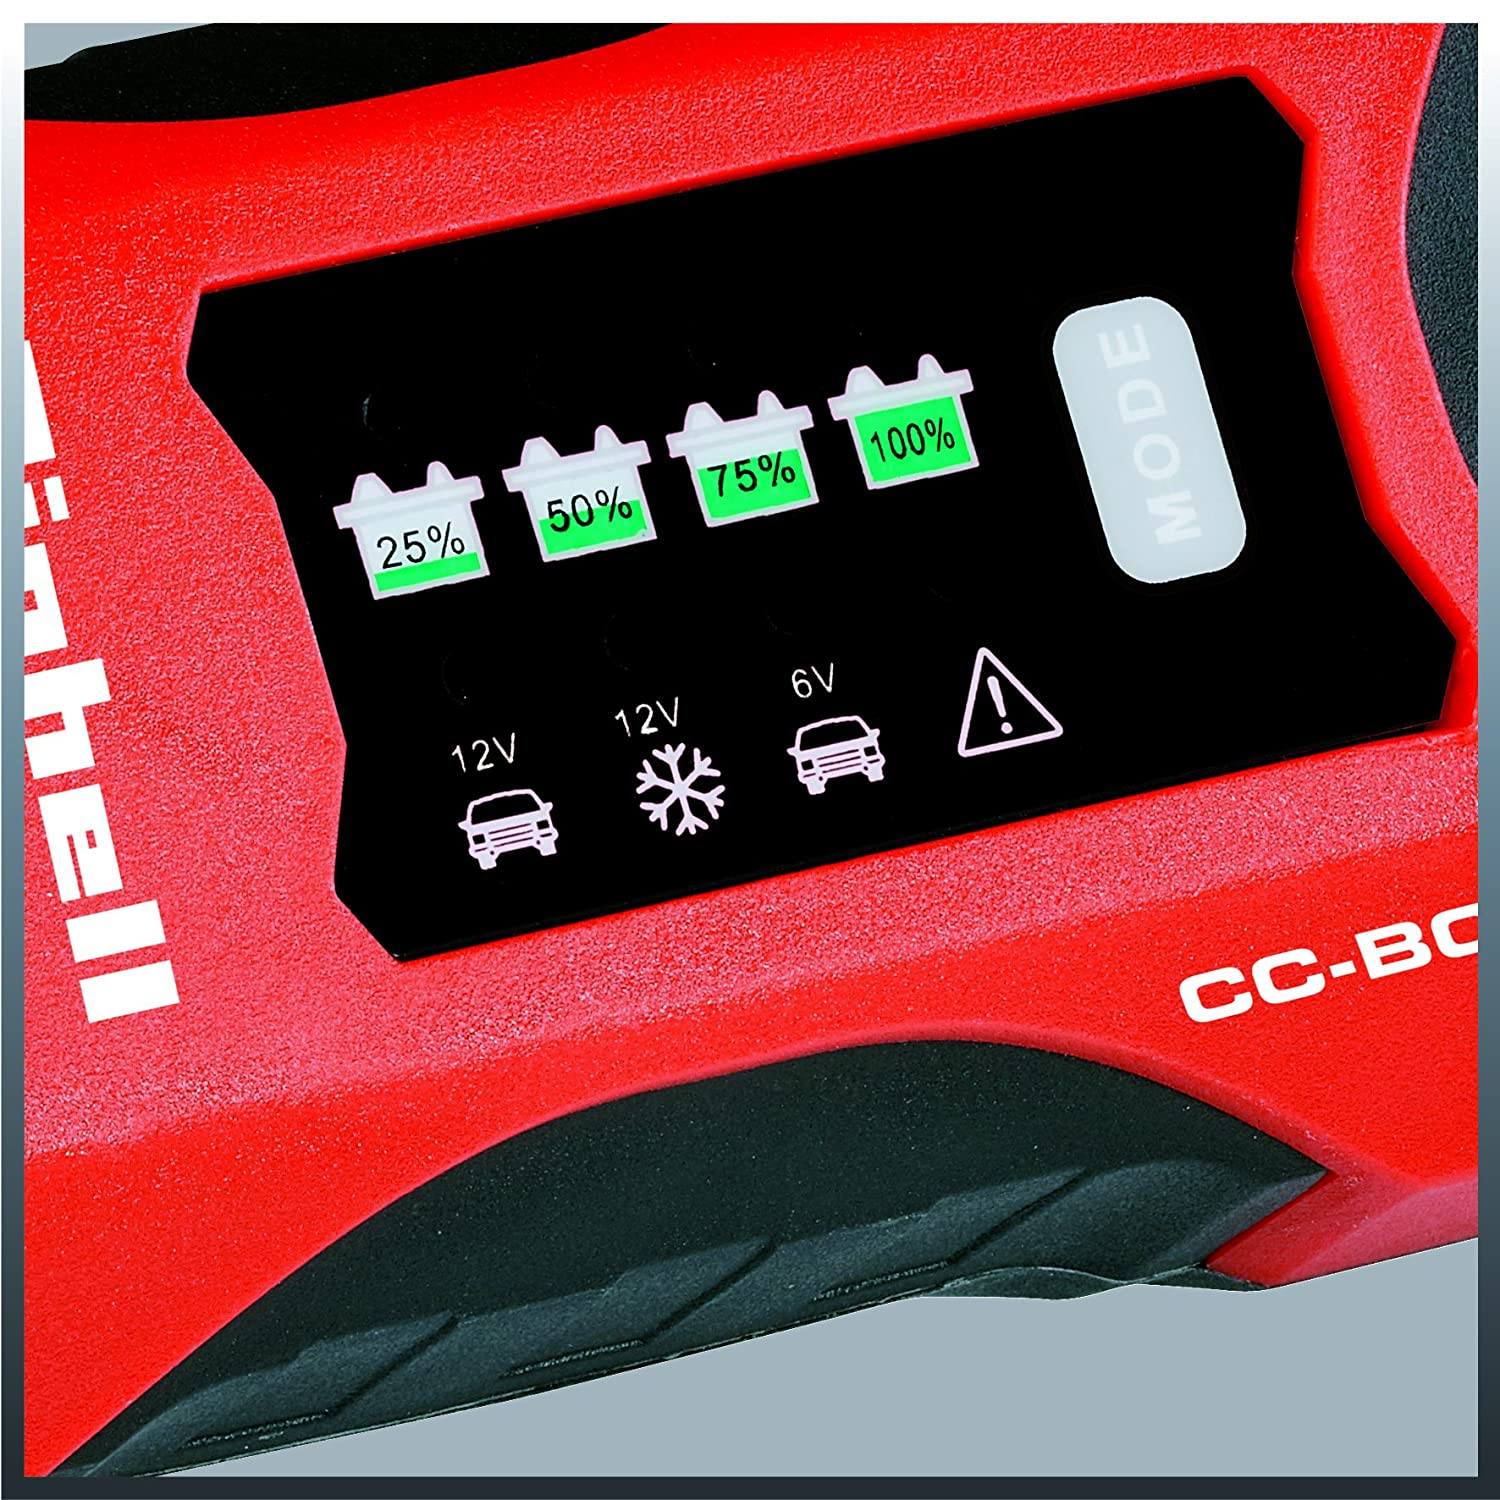 Einhell CC-BC 2 M Battery Charger for 3 to 60/Ah Batteries Charging Supply 6/V 12/V Winter Charge Mode LCD Battery Voltage /& Charging Progress Display